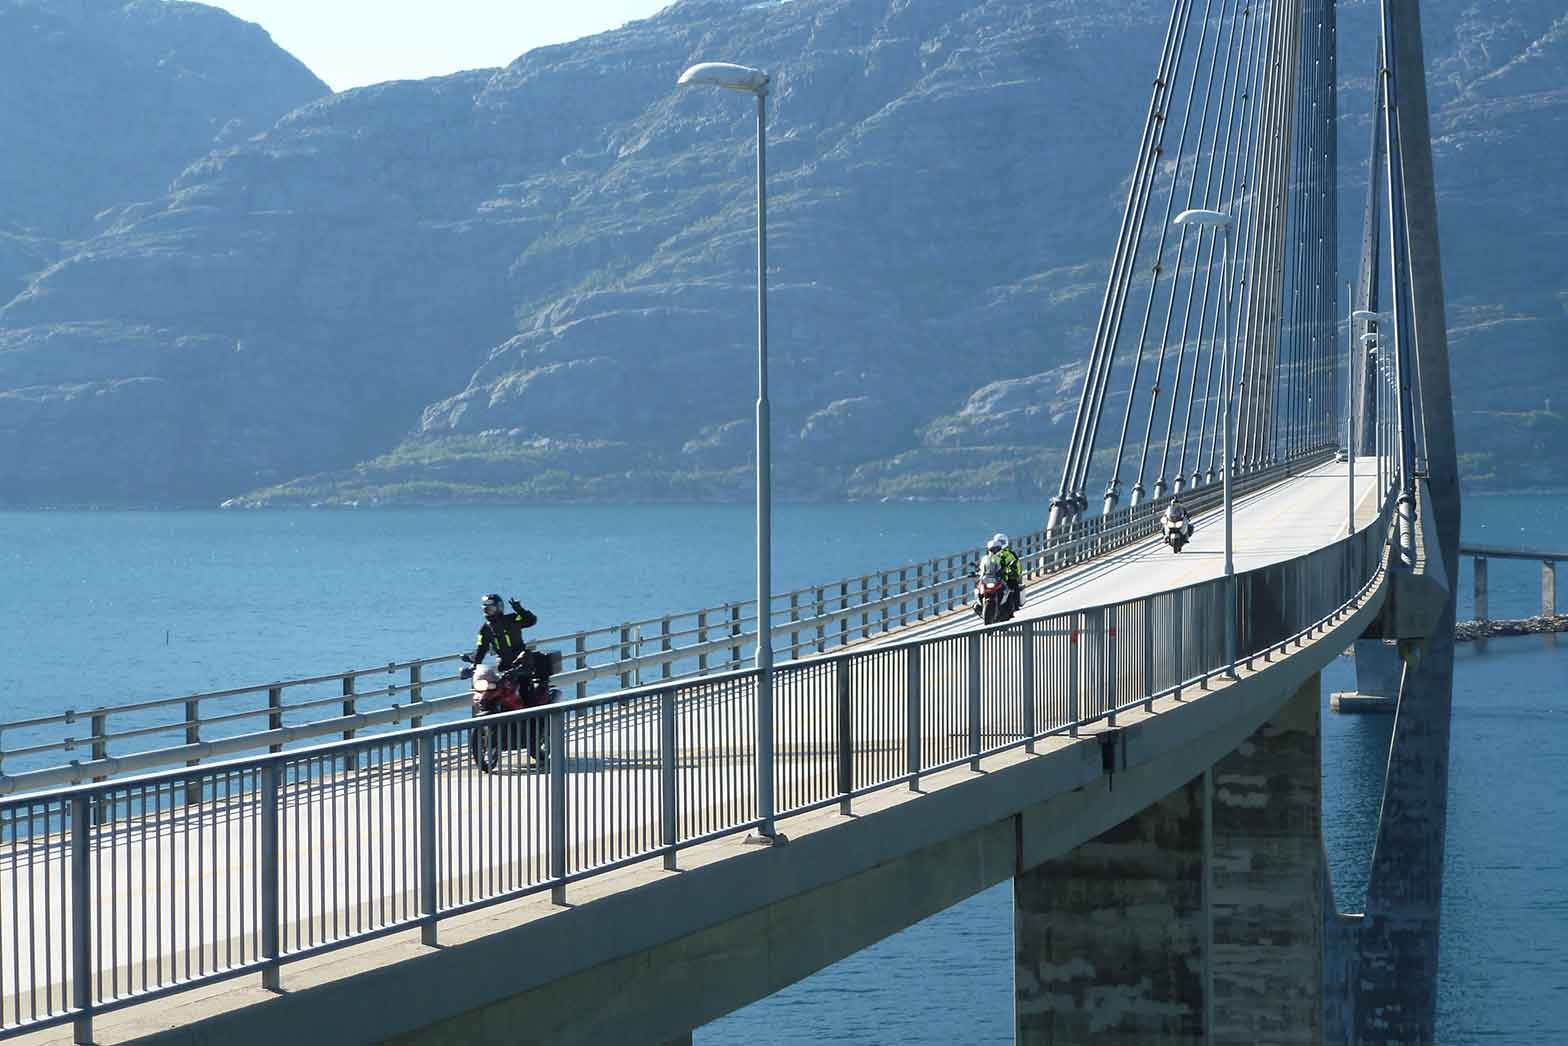 Bridge near Sandnessjoen, Norway